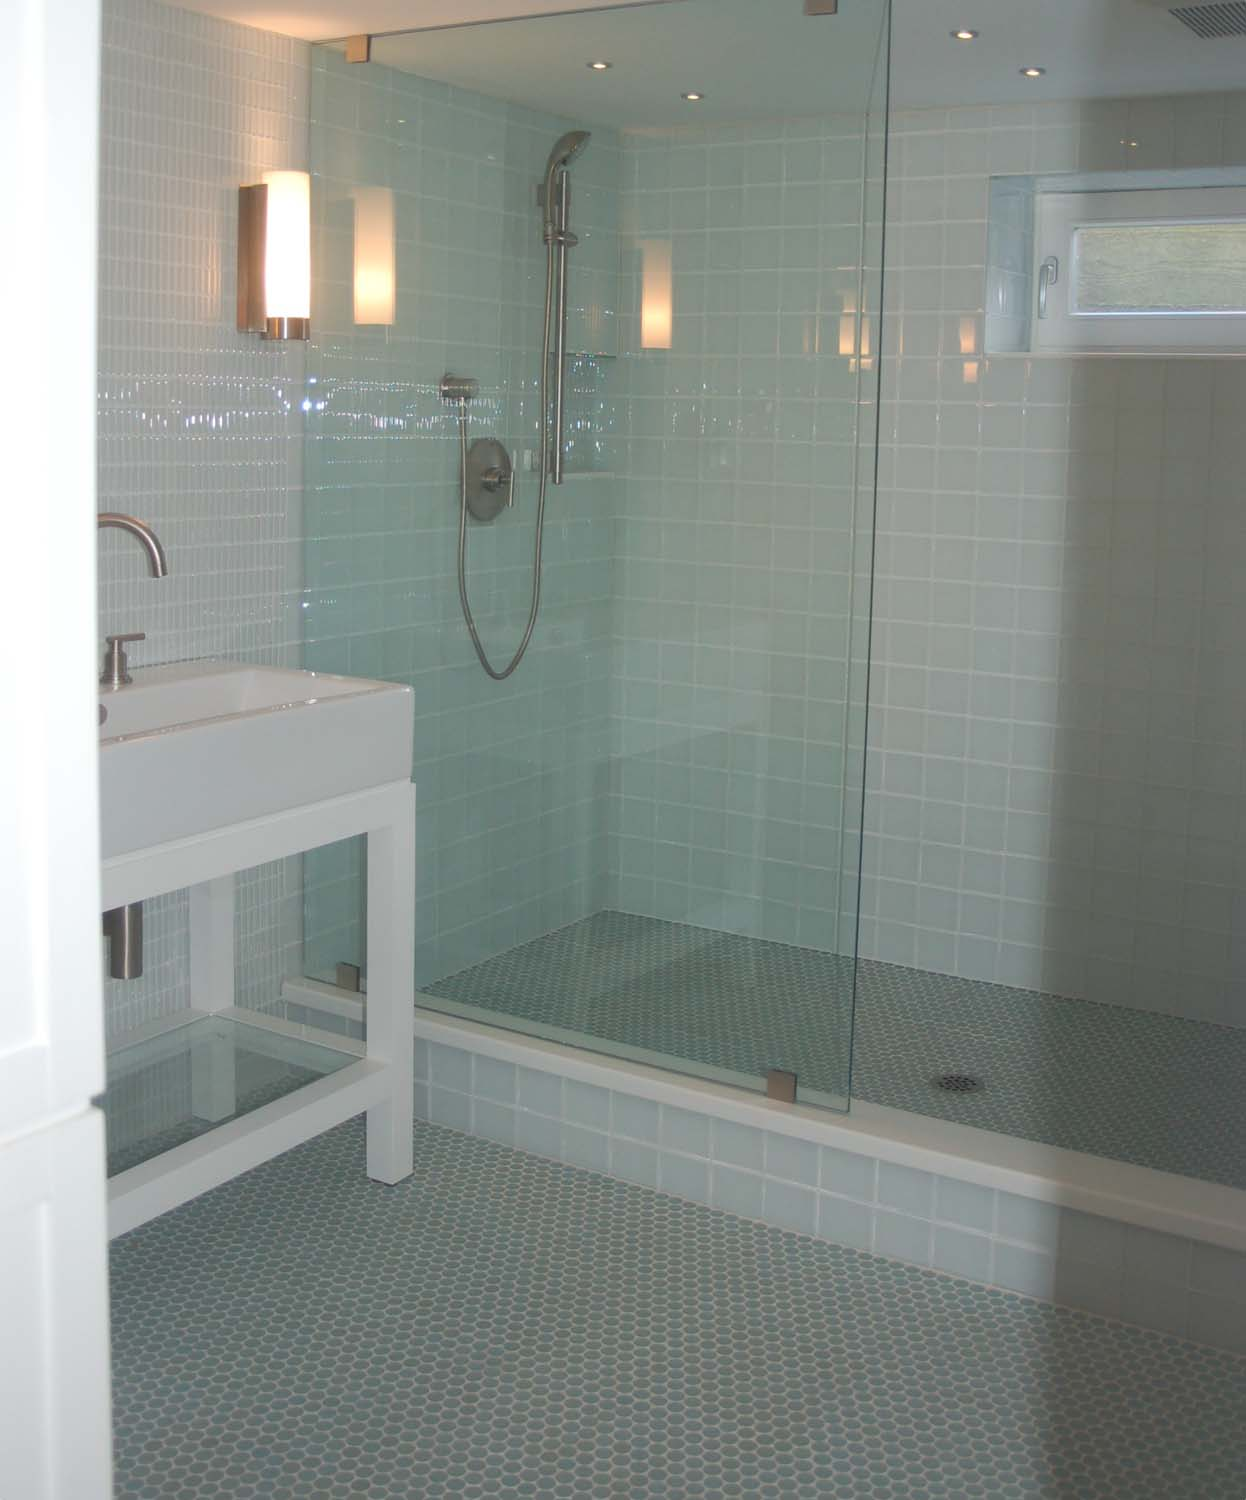 This Homeowner Really Liked The Look Of White Glass Tiles